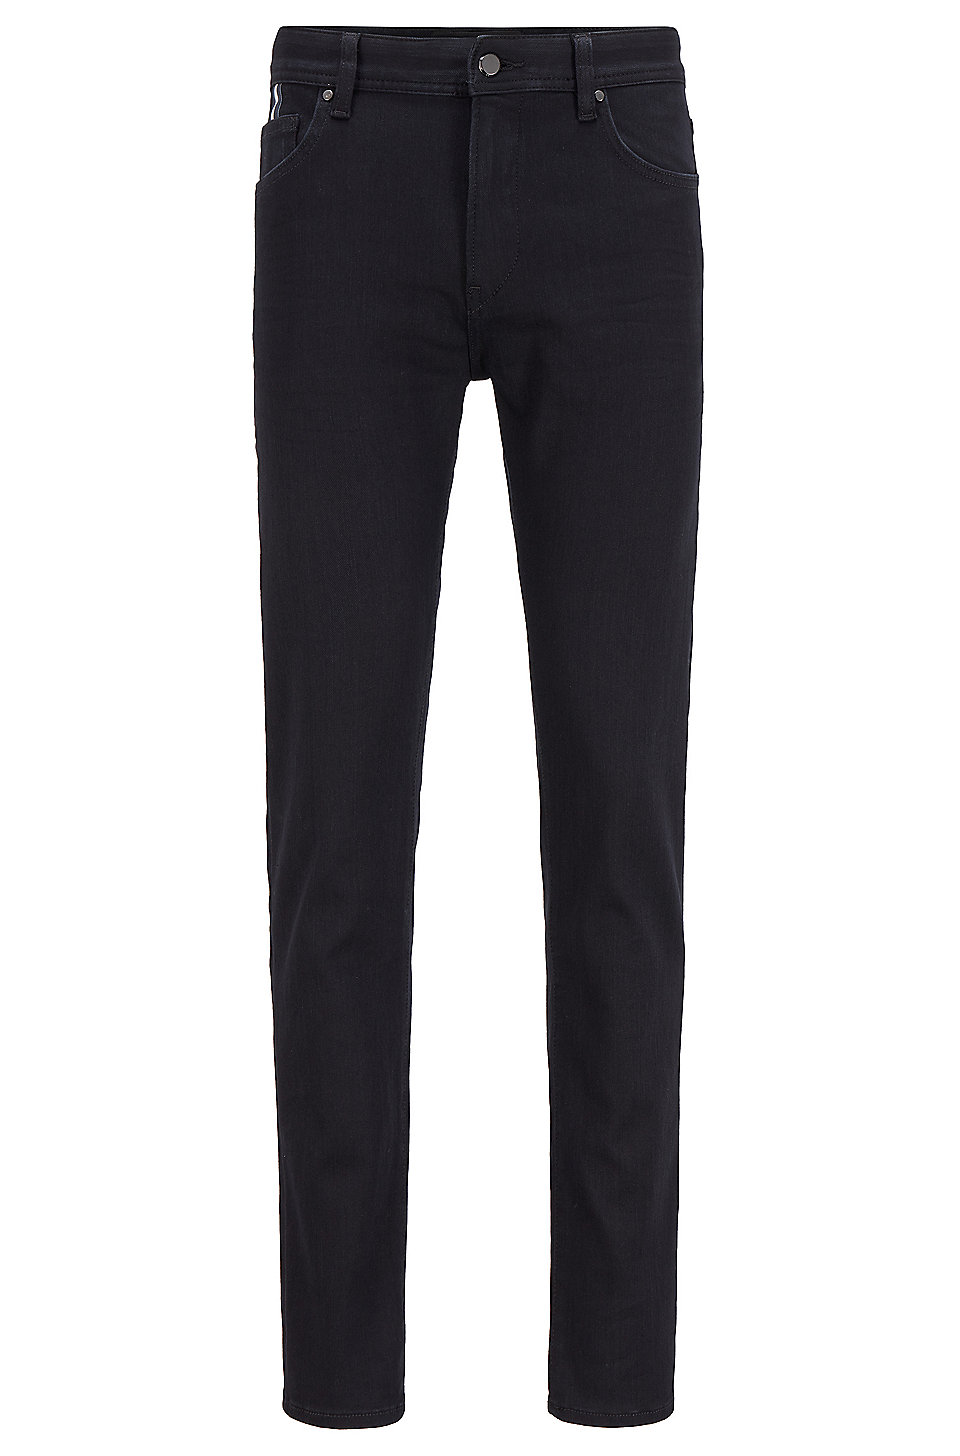 BOSS - Tapered-fit jeans in black-black Italian denim